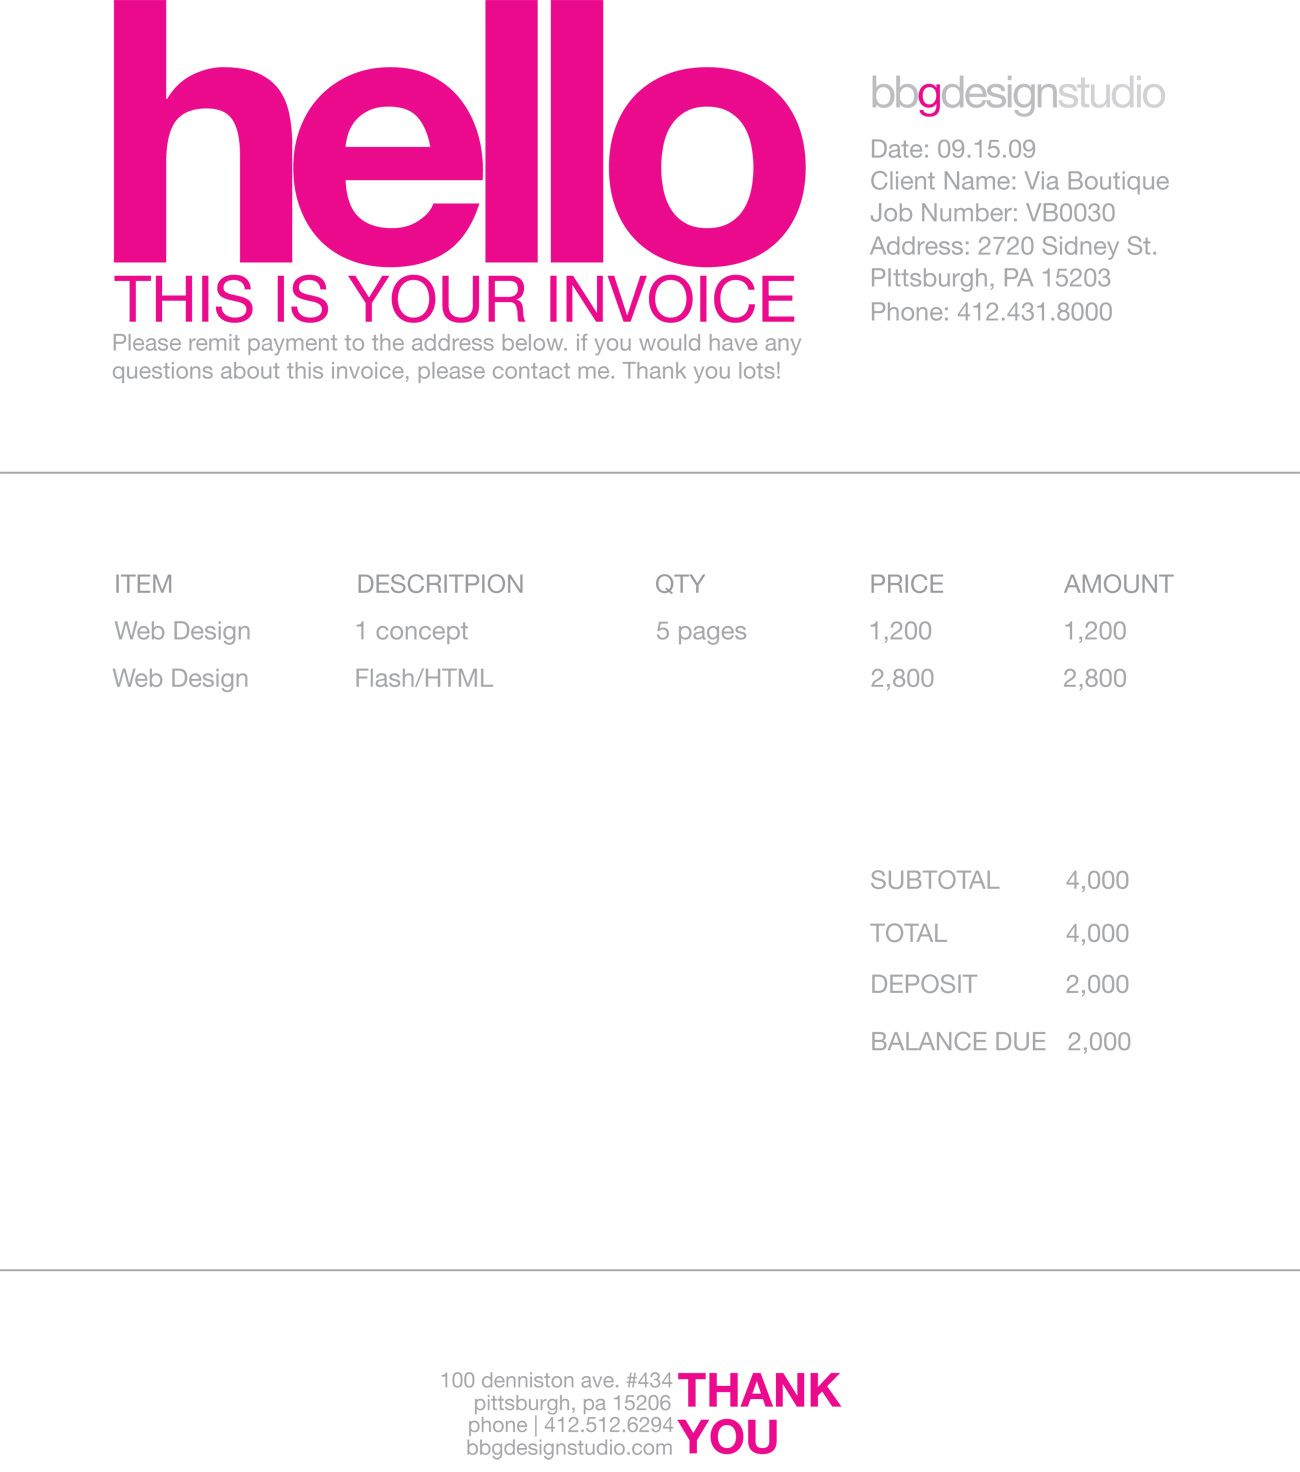 Totallocalus  Pleasing  Images About Invoice Design On Pinterest With Foxy Old Navy Return Without Receipt Besides Fake Receipt Generator Furthermore Fake Receipt Template With Archaic Receipt Template Excel Also Gross Receipts Tax Nm In Addition Victoria Secret Return Policy Without Receipt And Bpa Receipts As Well As Lowes Lost Receipt Additionally Receipt Printers From Pinterestcom With Totallocalus  Foxy  Images About Invoice Design On Pinterest With Archaic Old Navy Return Without Receipt Besides Fake Receipt Generator Furthermore Fake Receipt Template And Pleasing Receipt Template Excel Also Gross Receipts Tax Nm In Addition Victoria Secret Return Policy Without Receipt From Pinterestcom